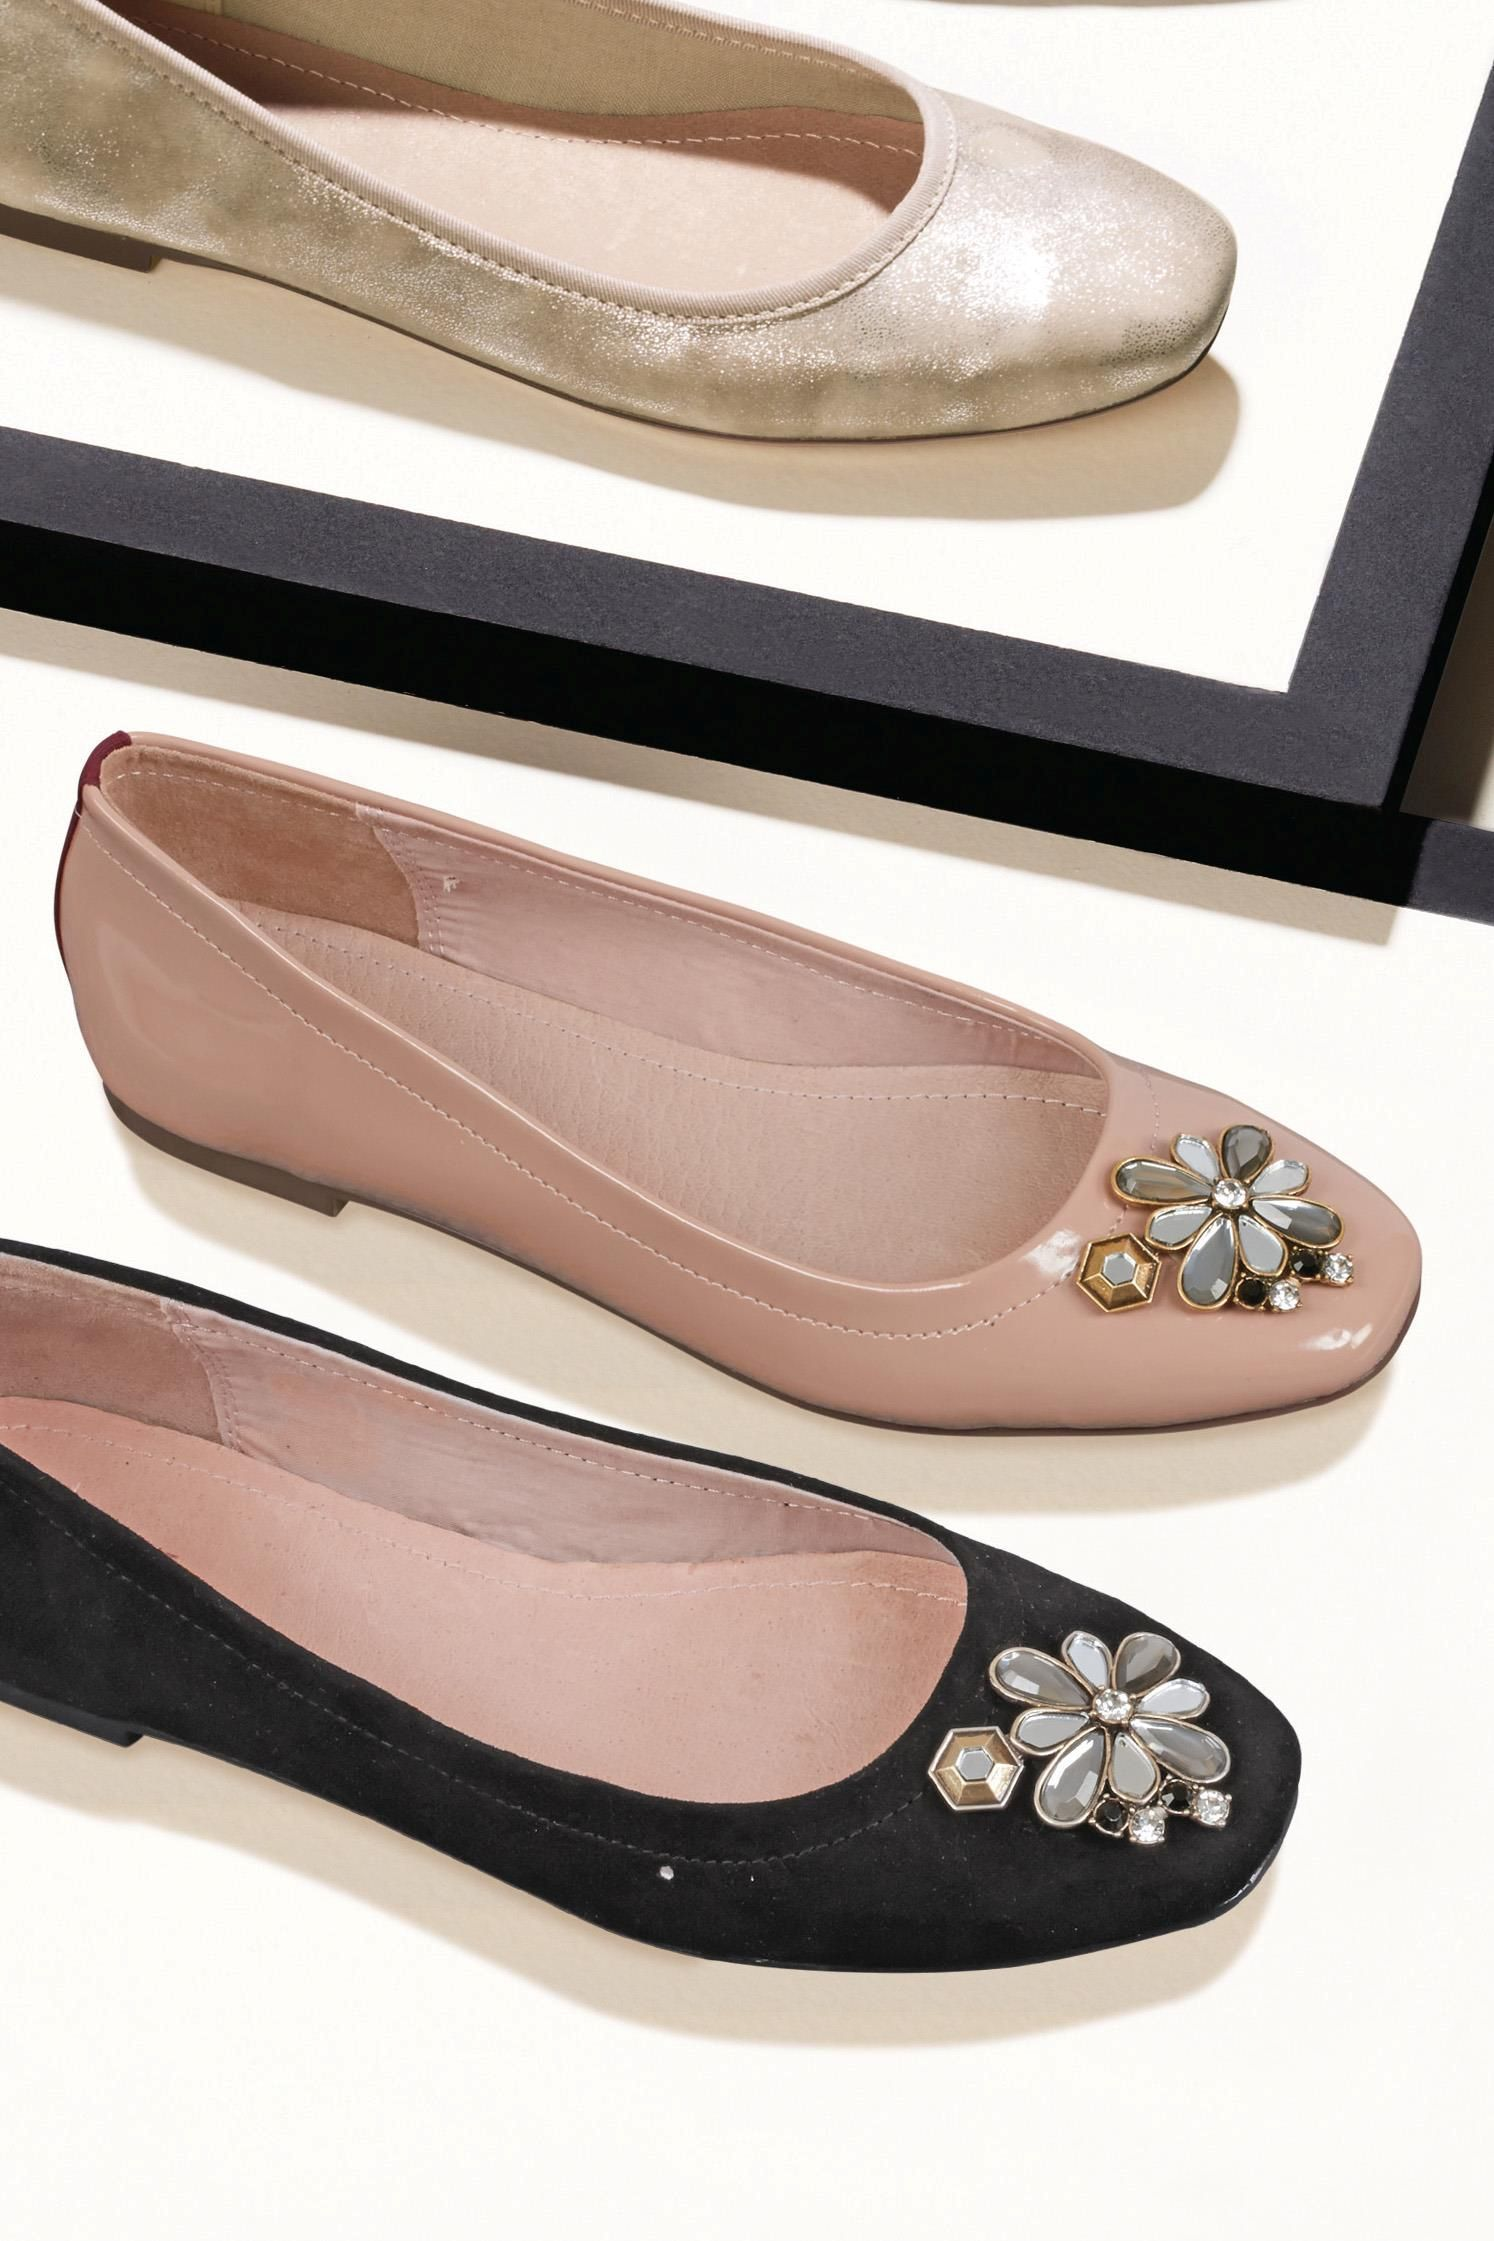 cheaper 0a474 0b39c Buy Jewel Square Toe Ballerinas from the Next UK online shop ...